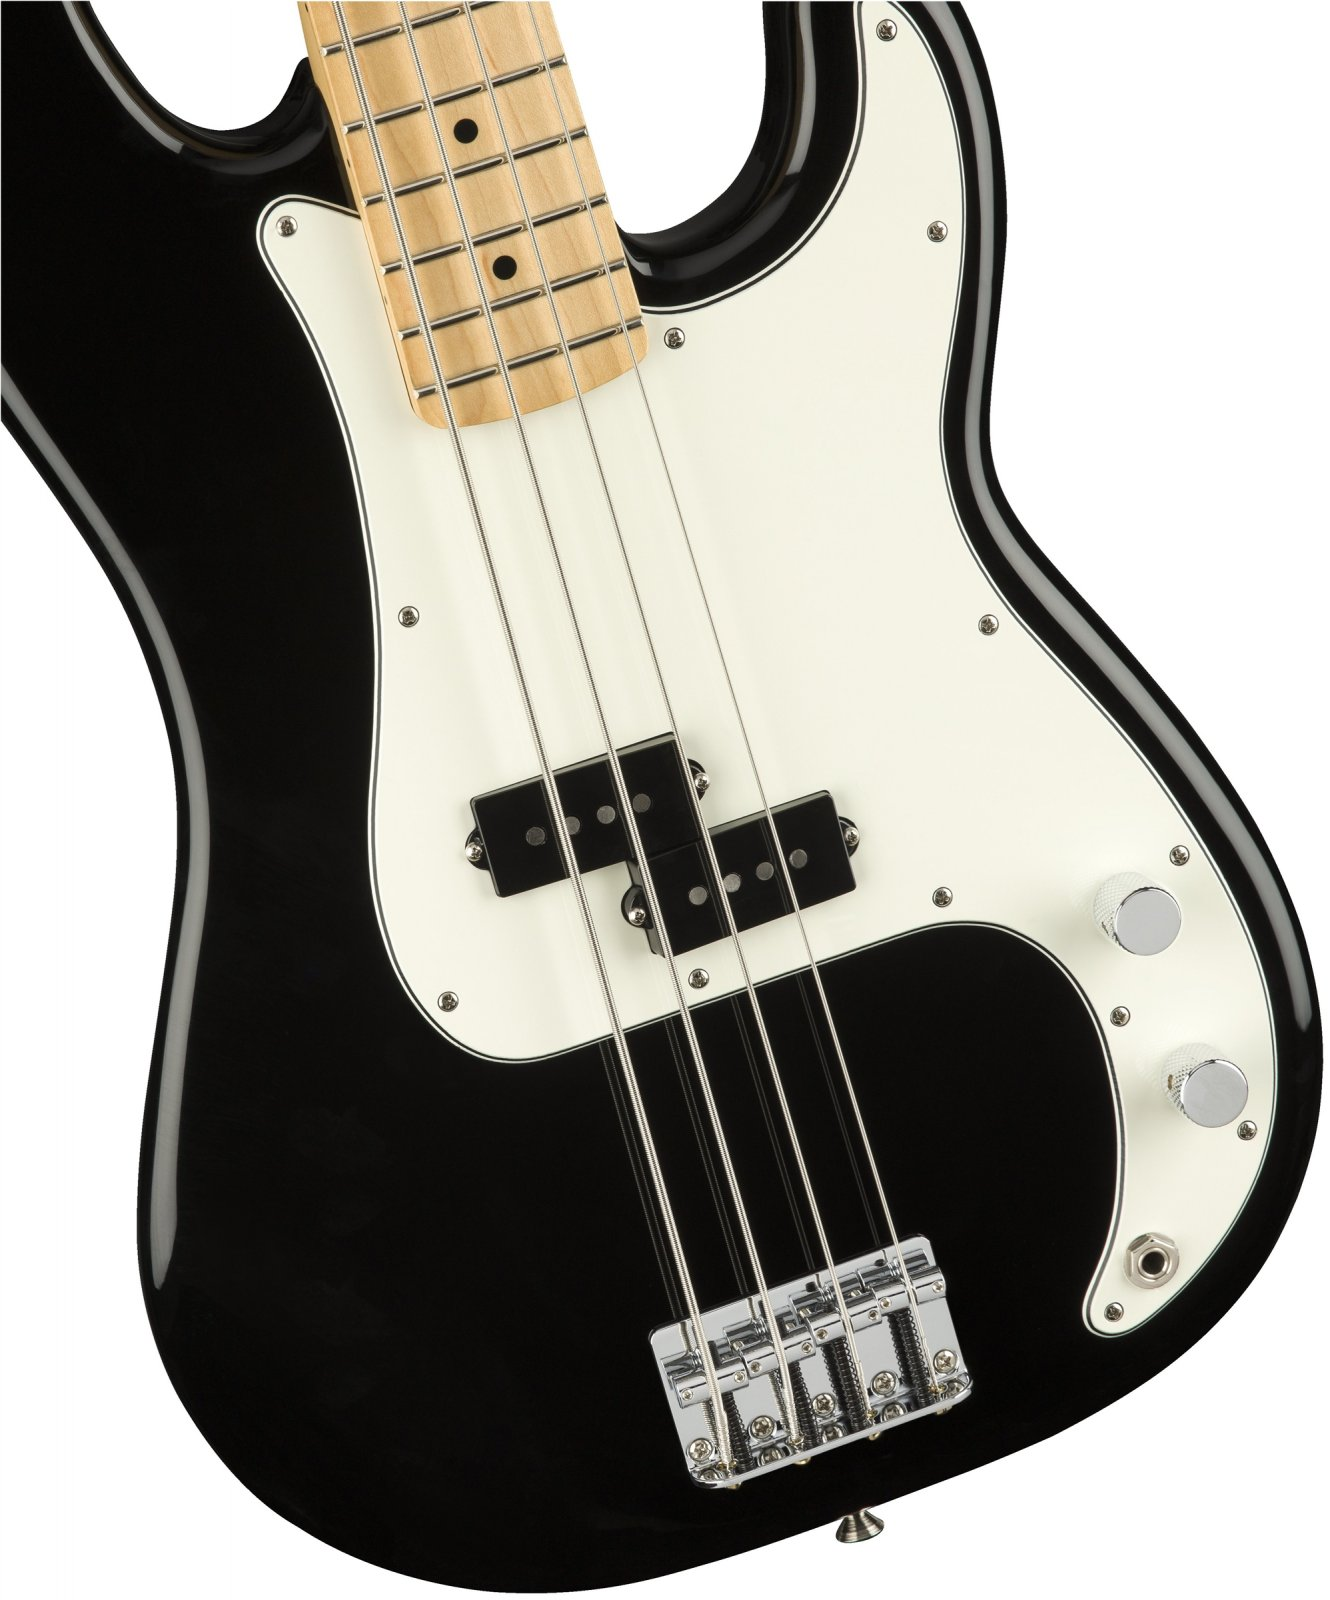 Fender Player Series Precision Bass - Black